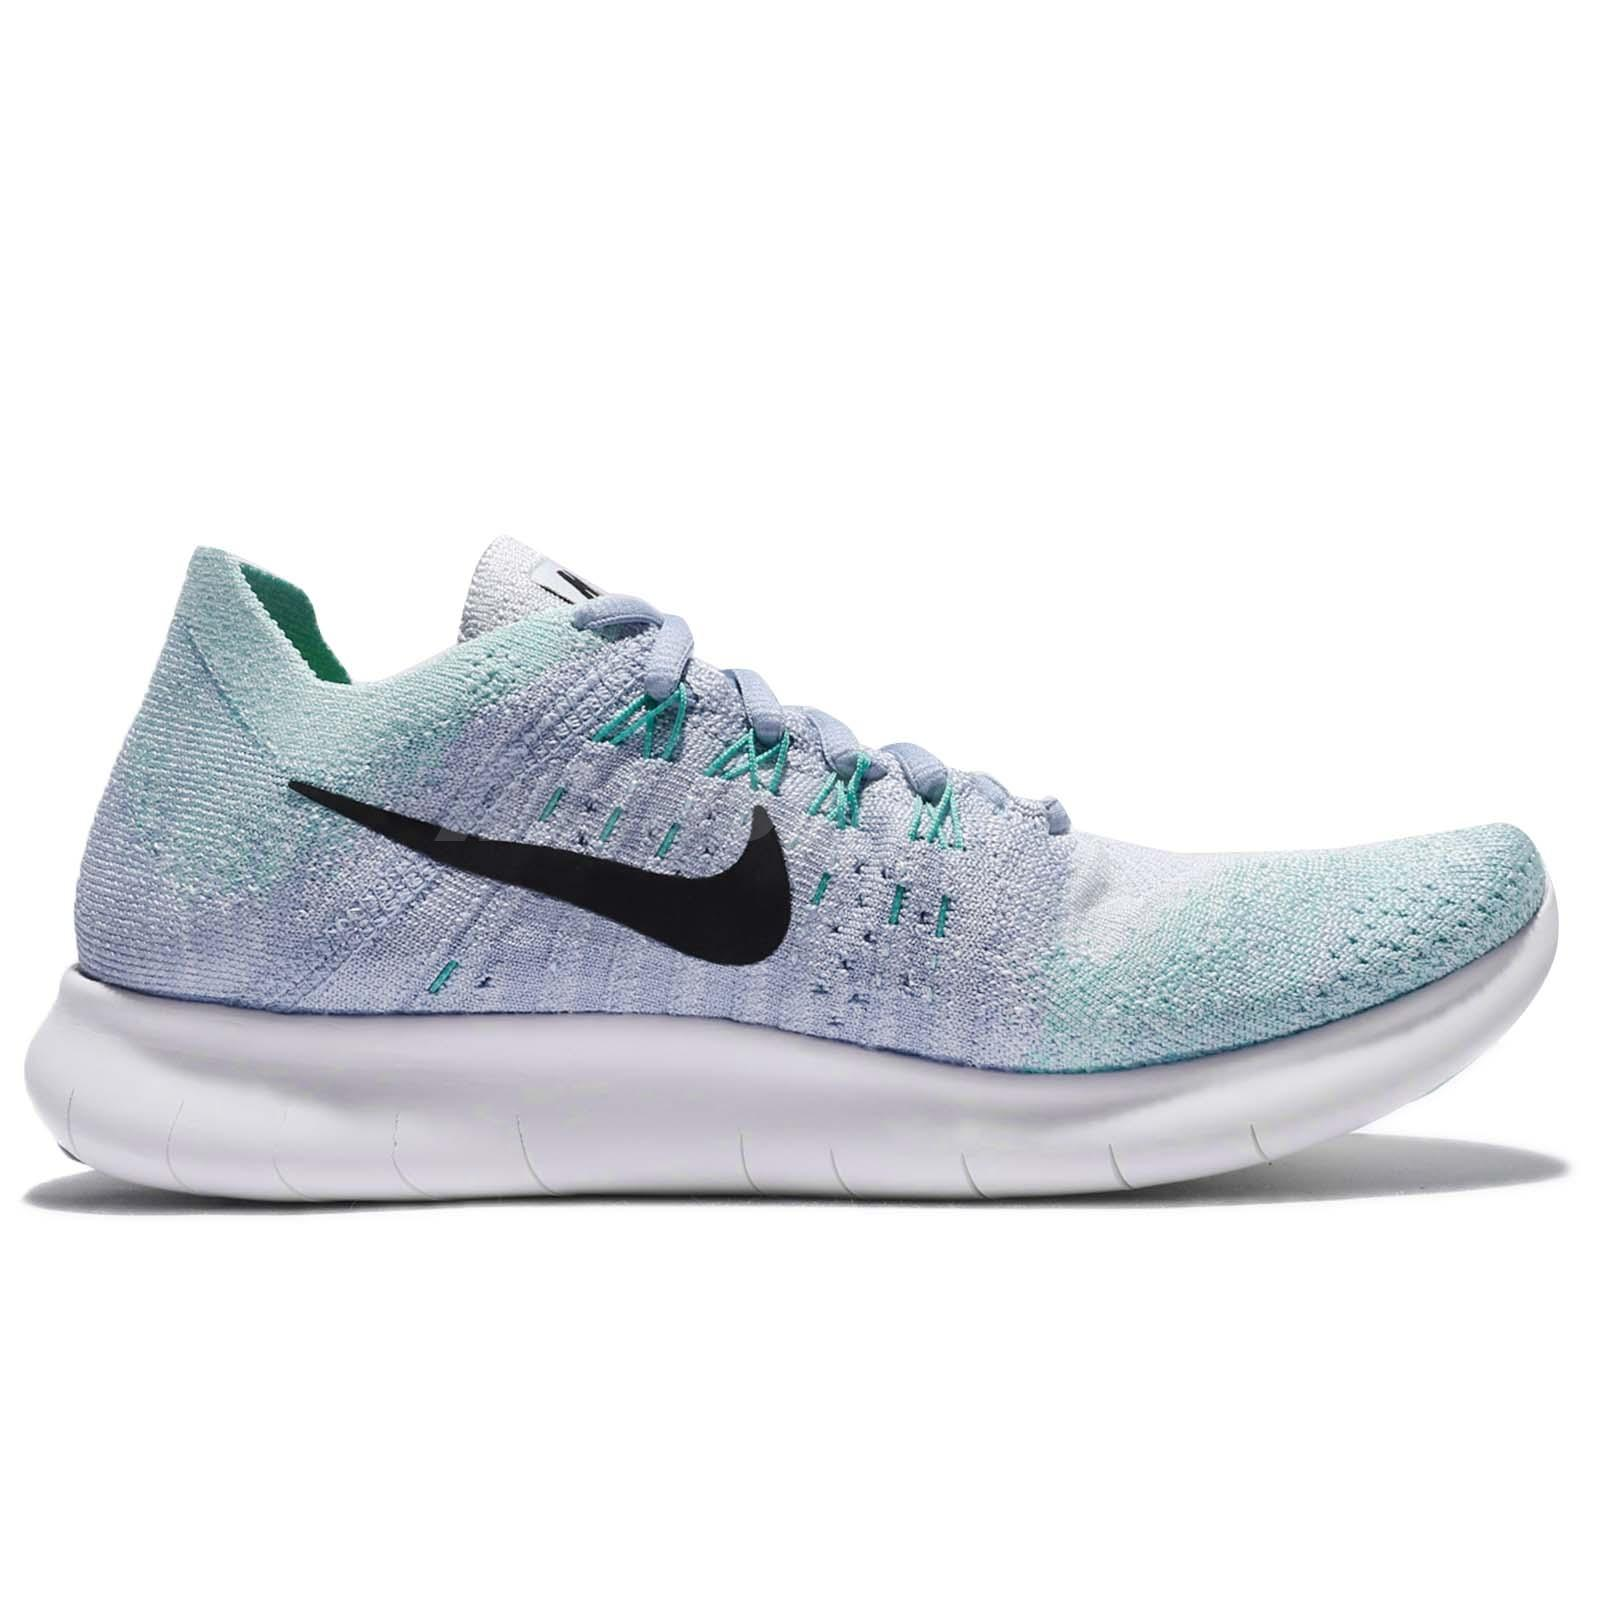 competitive price 64567 4f171 Details about Wmns Nike Free Rn Flyknit 2017 Run Blue Tint Black Women  Running Shoe 880844-402